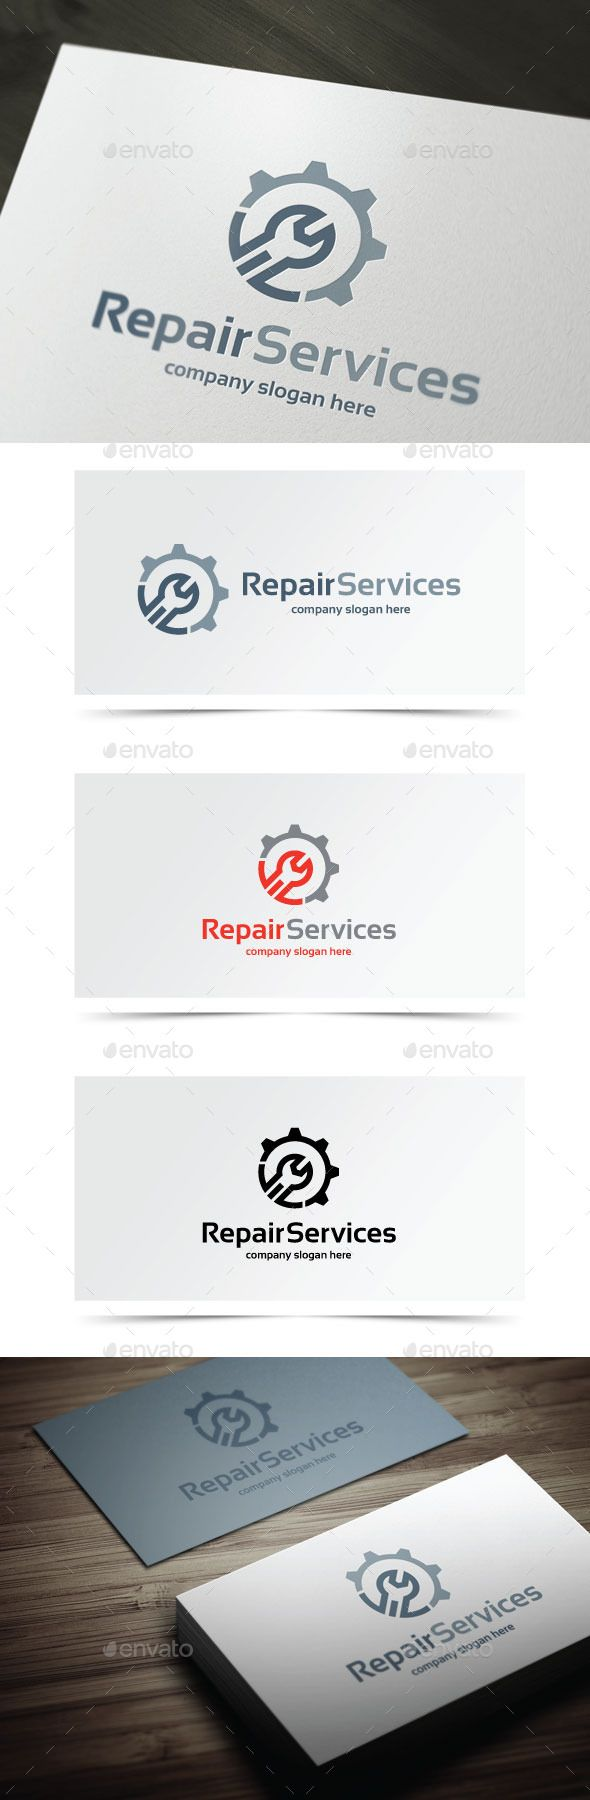 Repair Services — Photoshop PSD #electrical #construction • Available here → https://graphicriver.net/item/repair-services/10406740?ref=pxcr